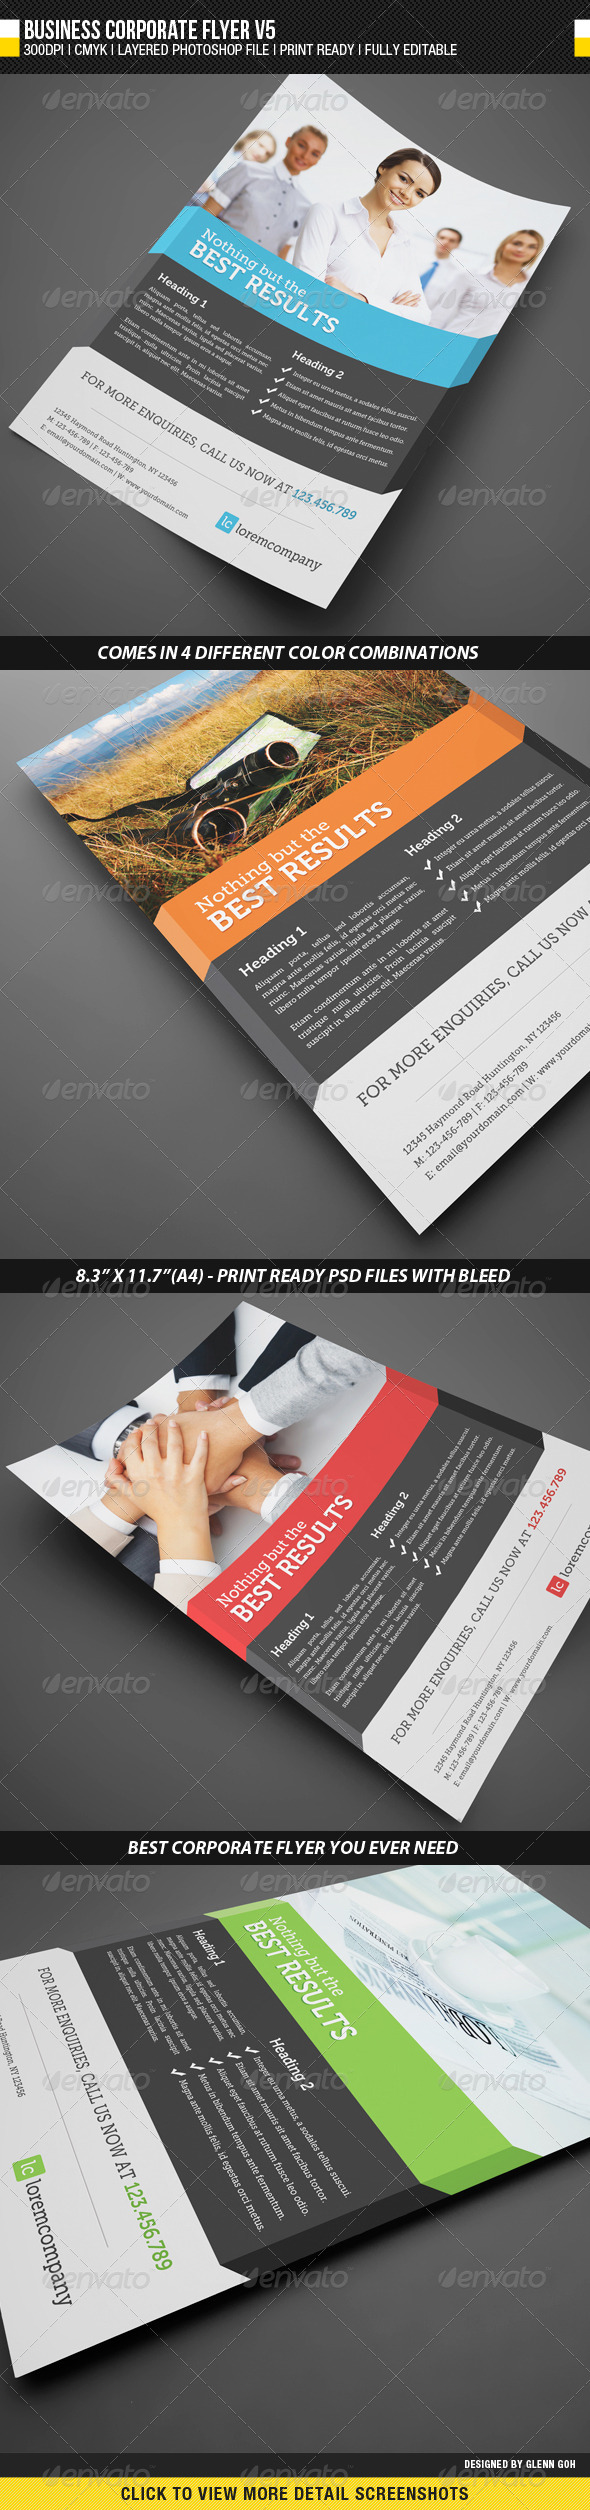 GraphicRiver Business Corporate Flyer V5 2291945